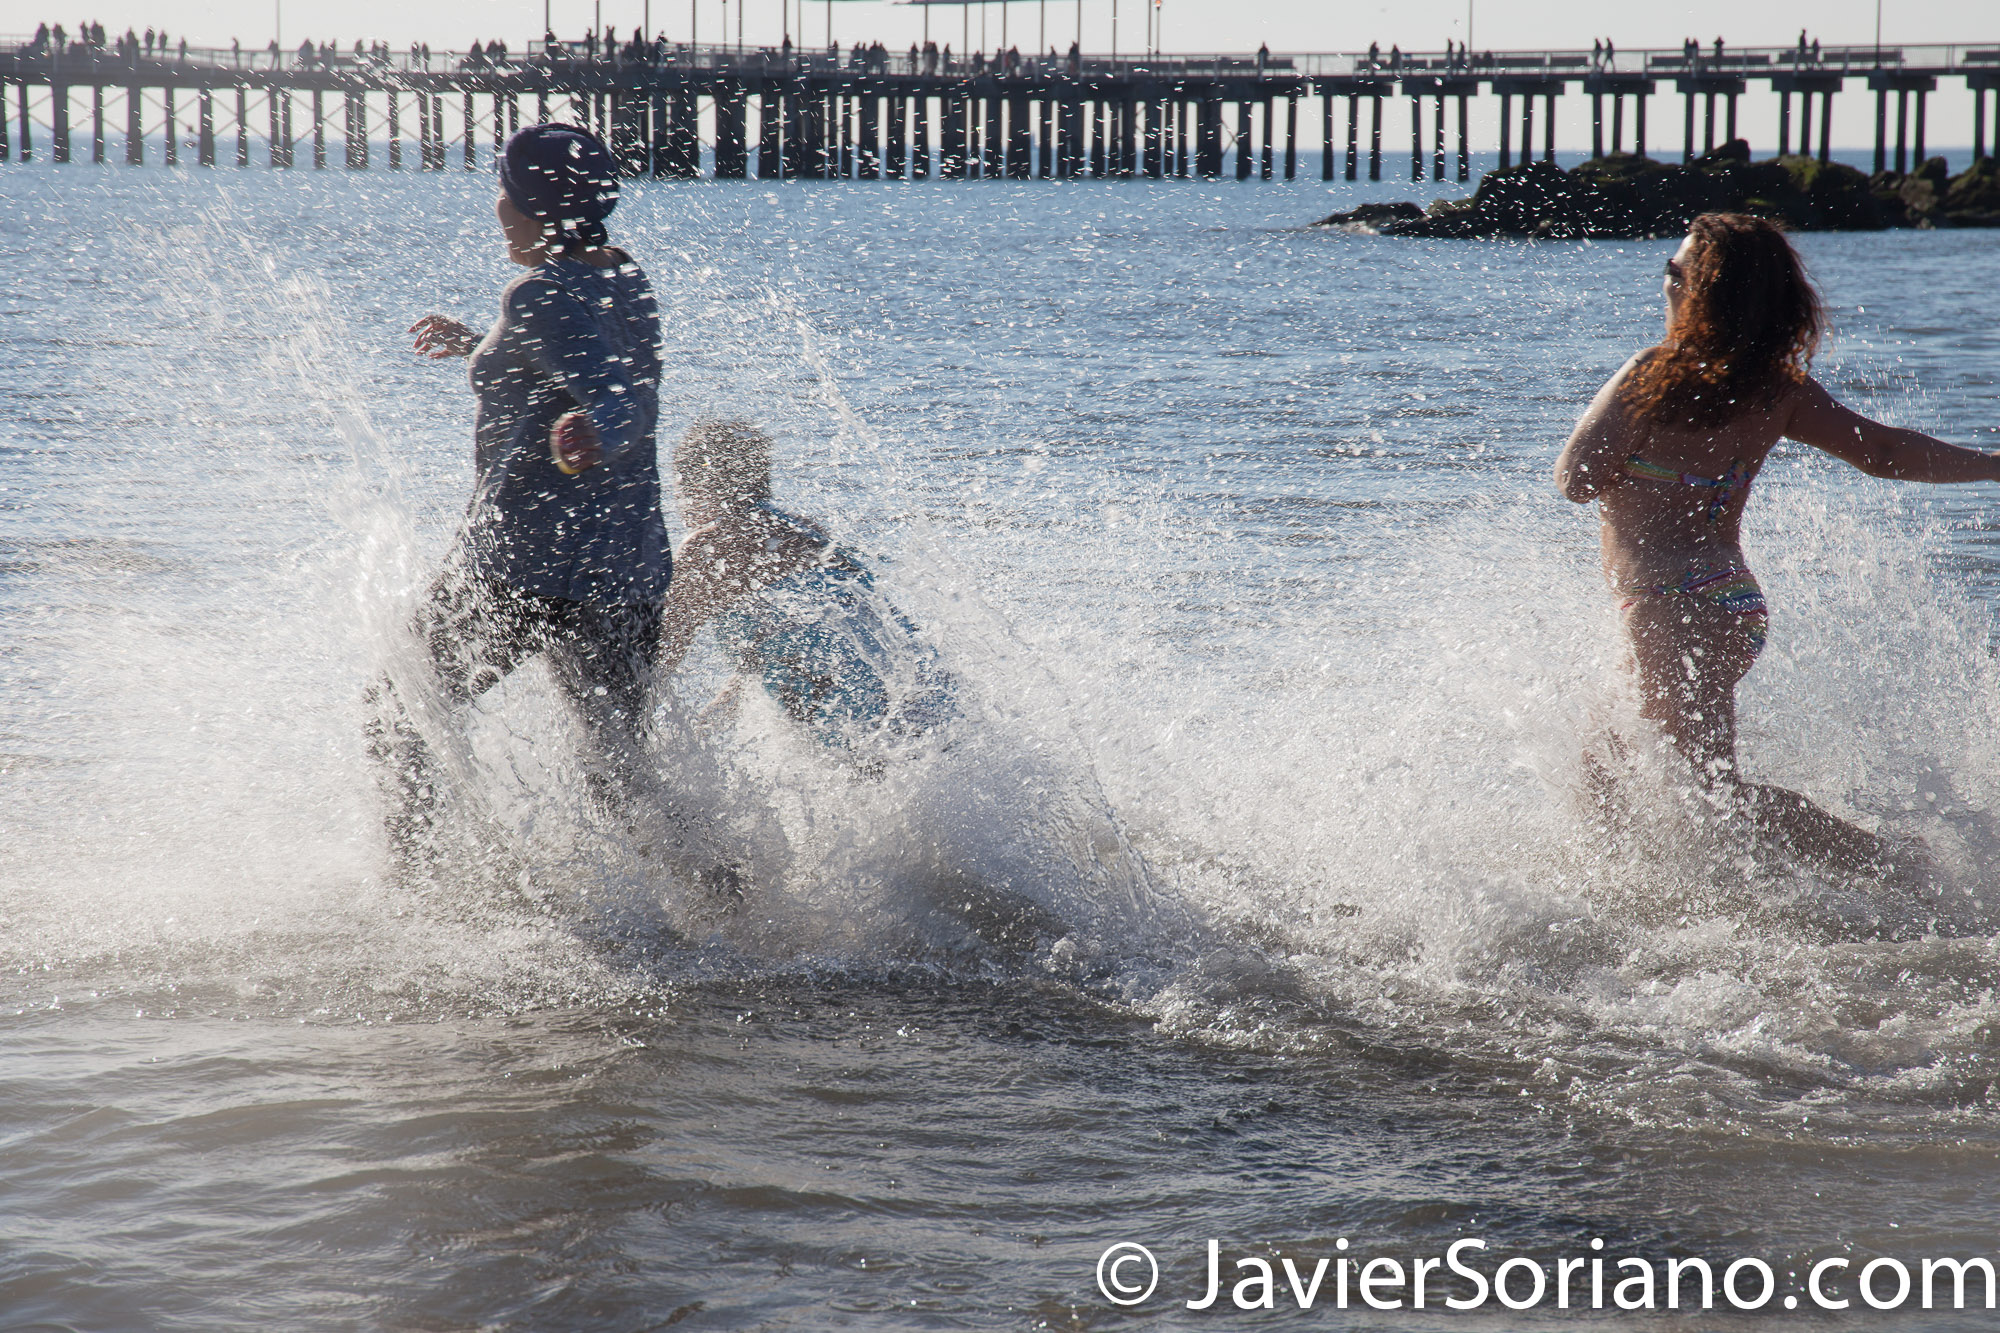 1/1/2017 NYC - 113th Annual Coney Island Polar Bear New Years Day Plunge. Photo by Javier Soriano/www.JavierSoriano.com